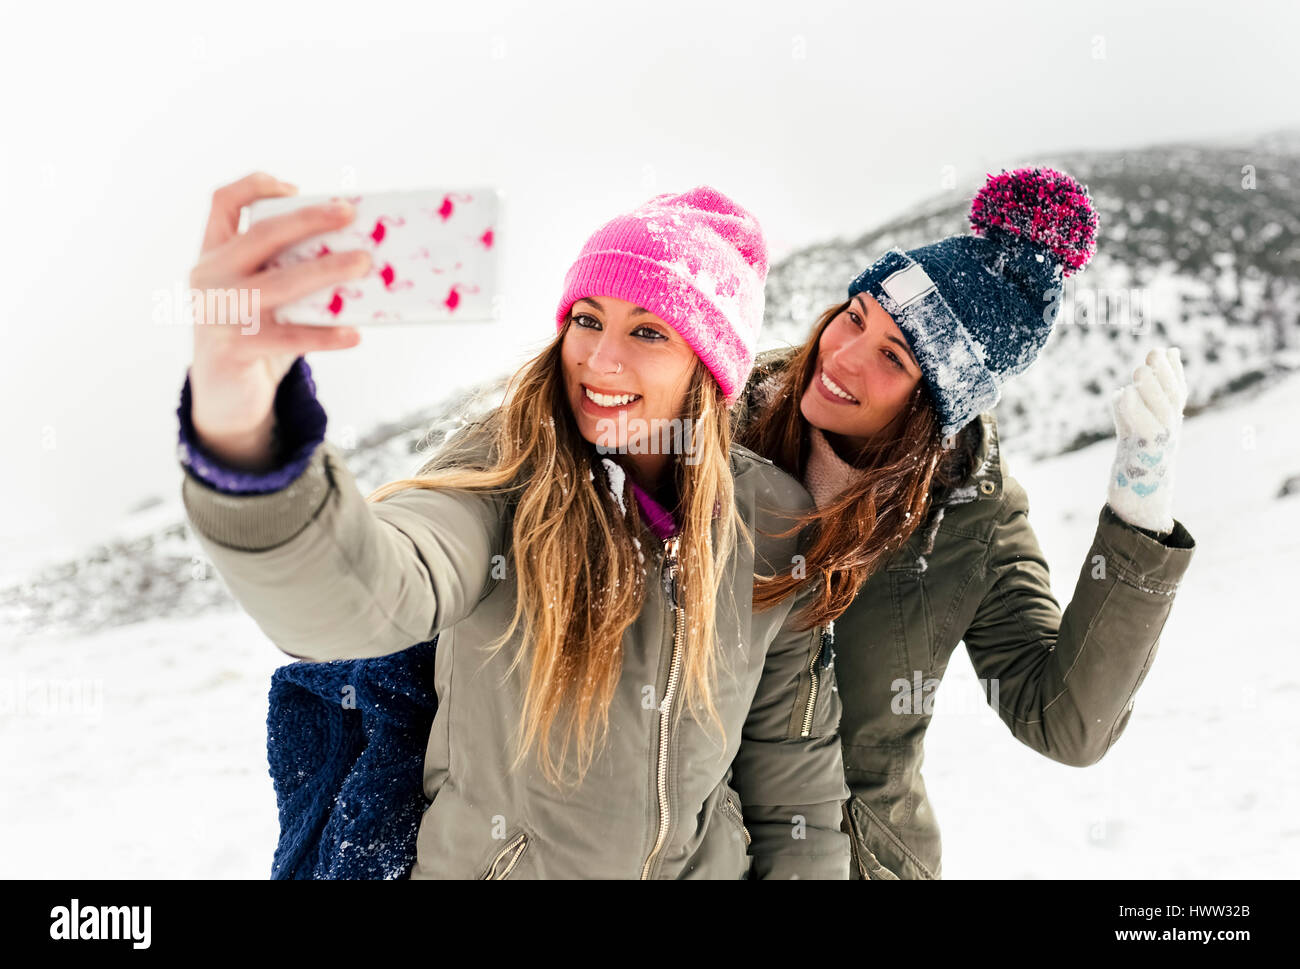 Two friends taking smart phone selfies in the snow - Stock Image